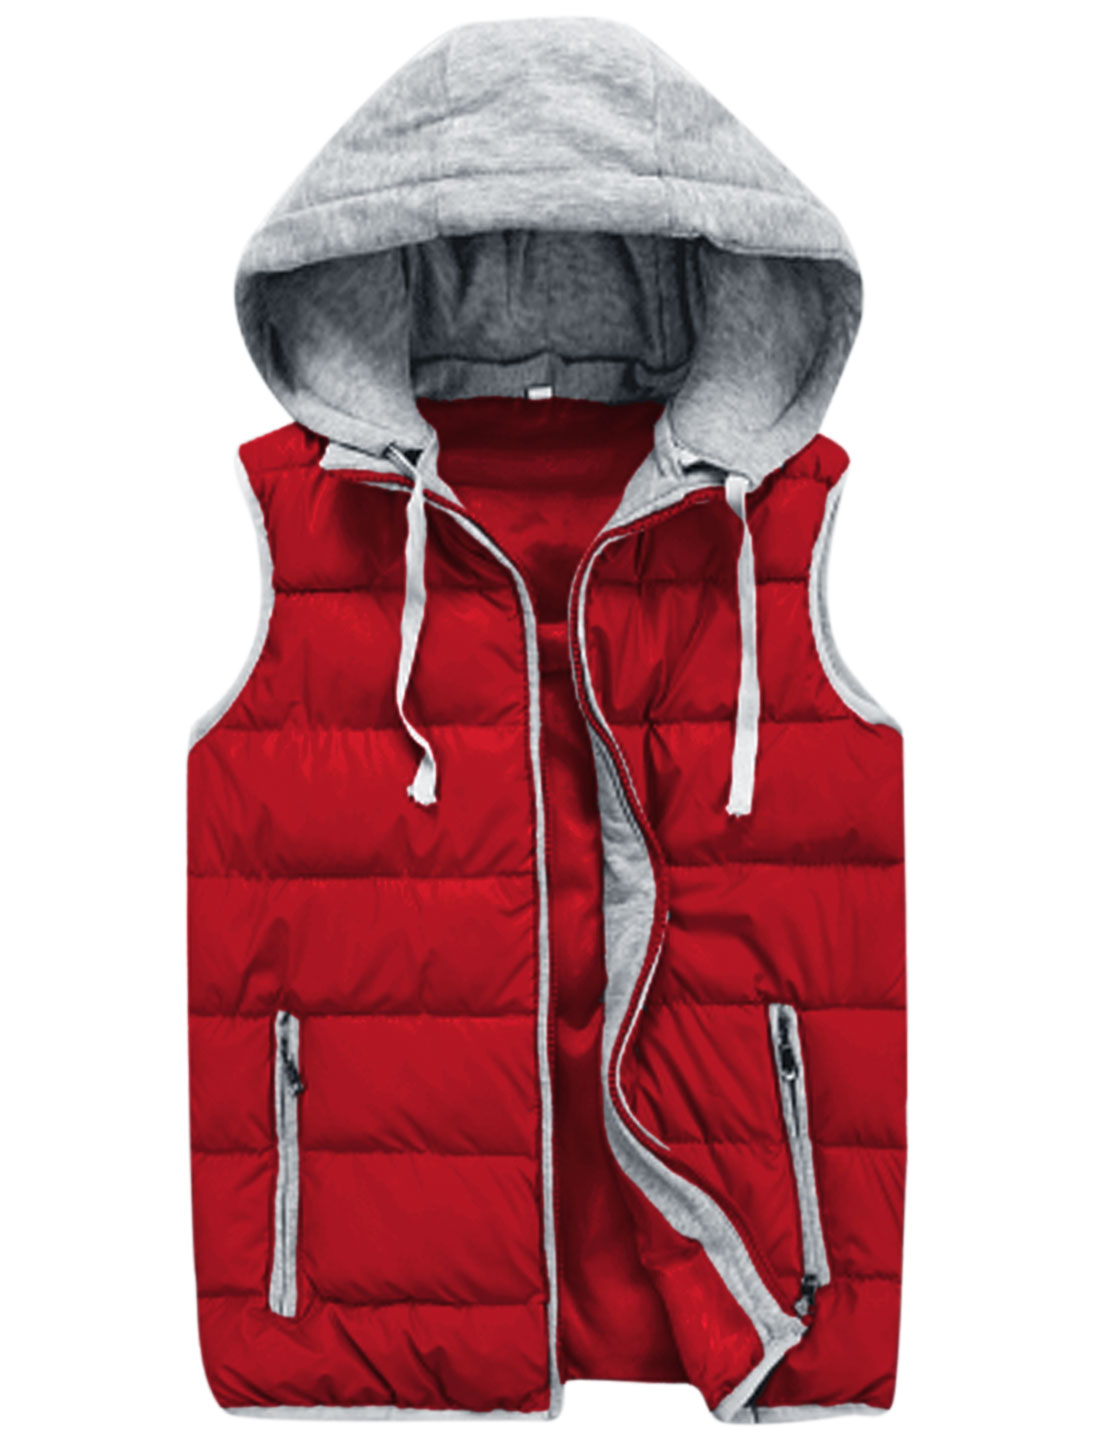 Men Zipper Fly Interior Pockets Fashion Padded Vest Red M